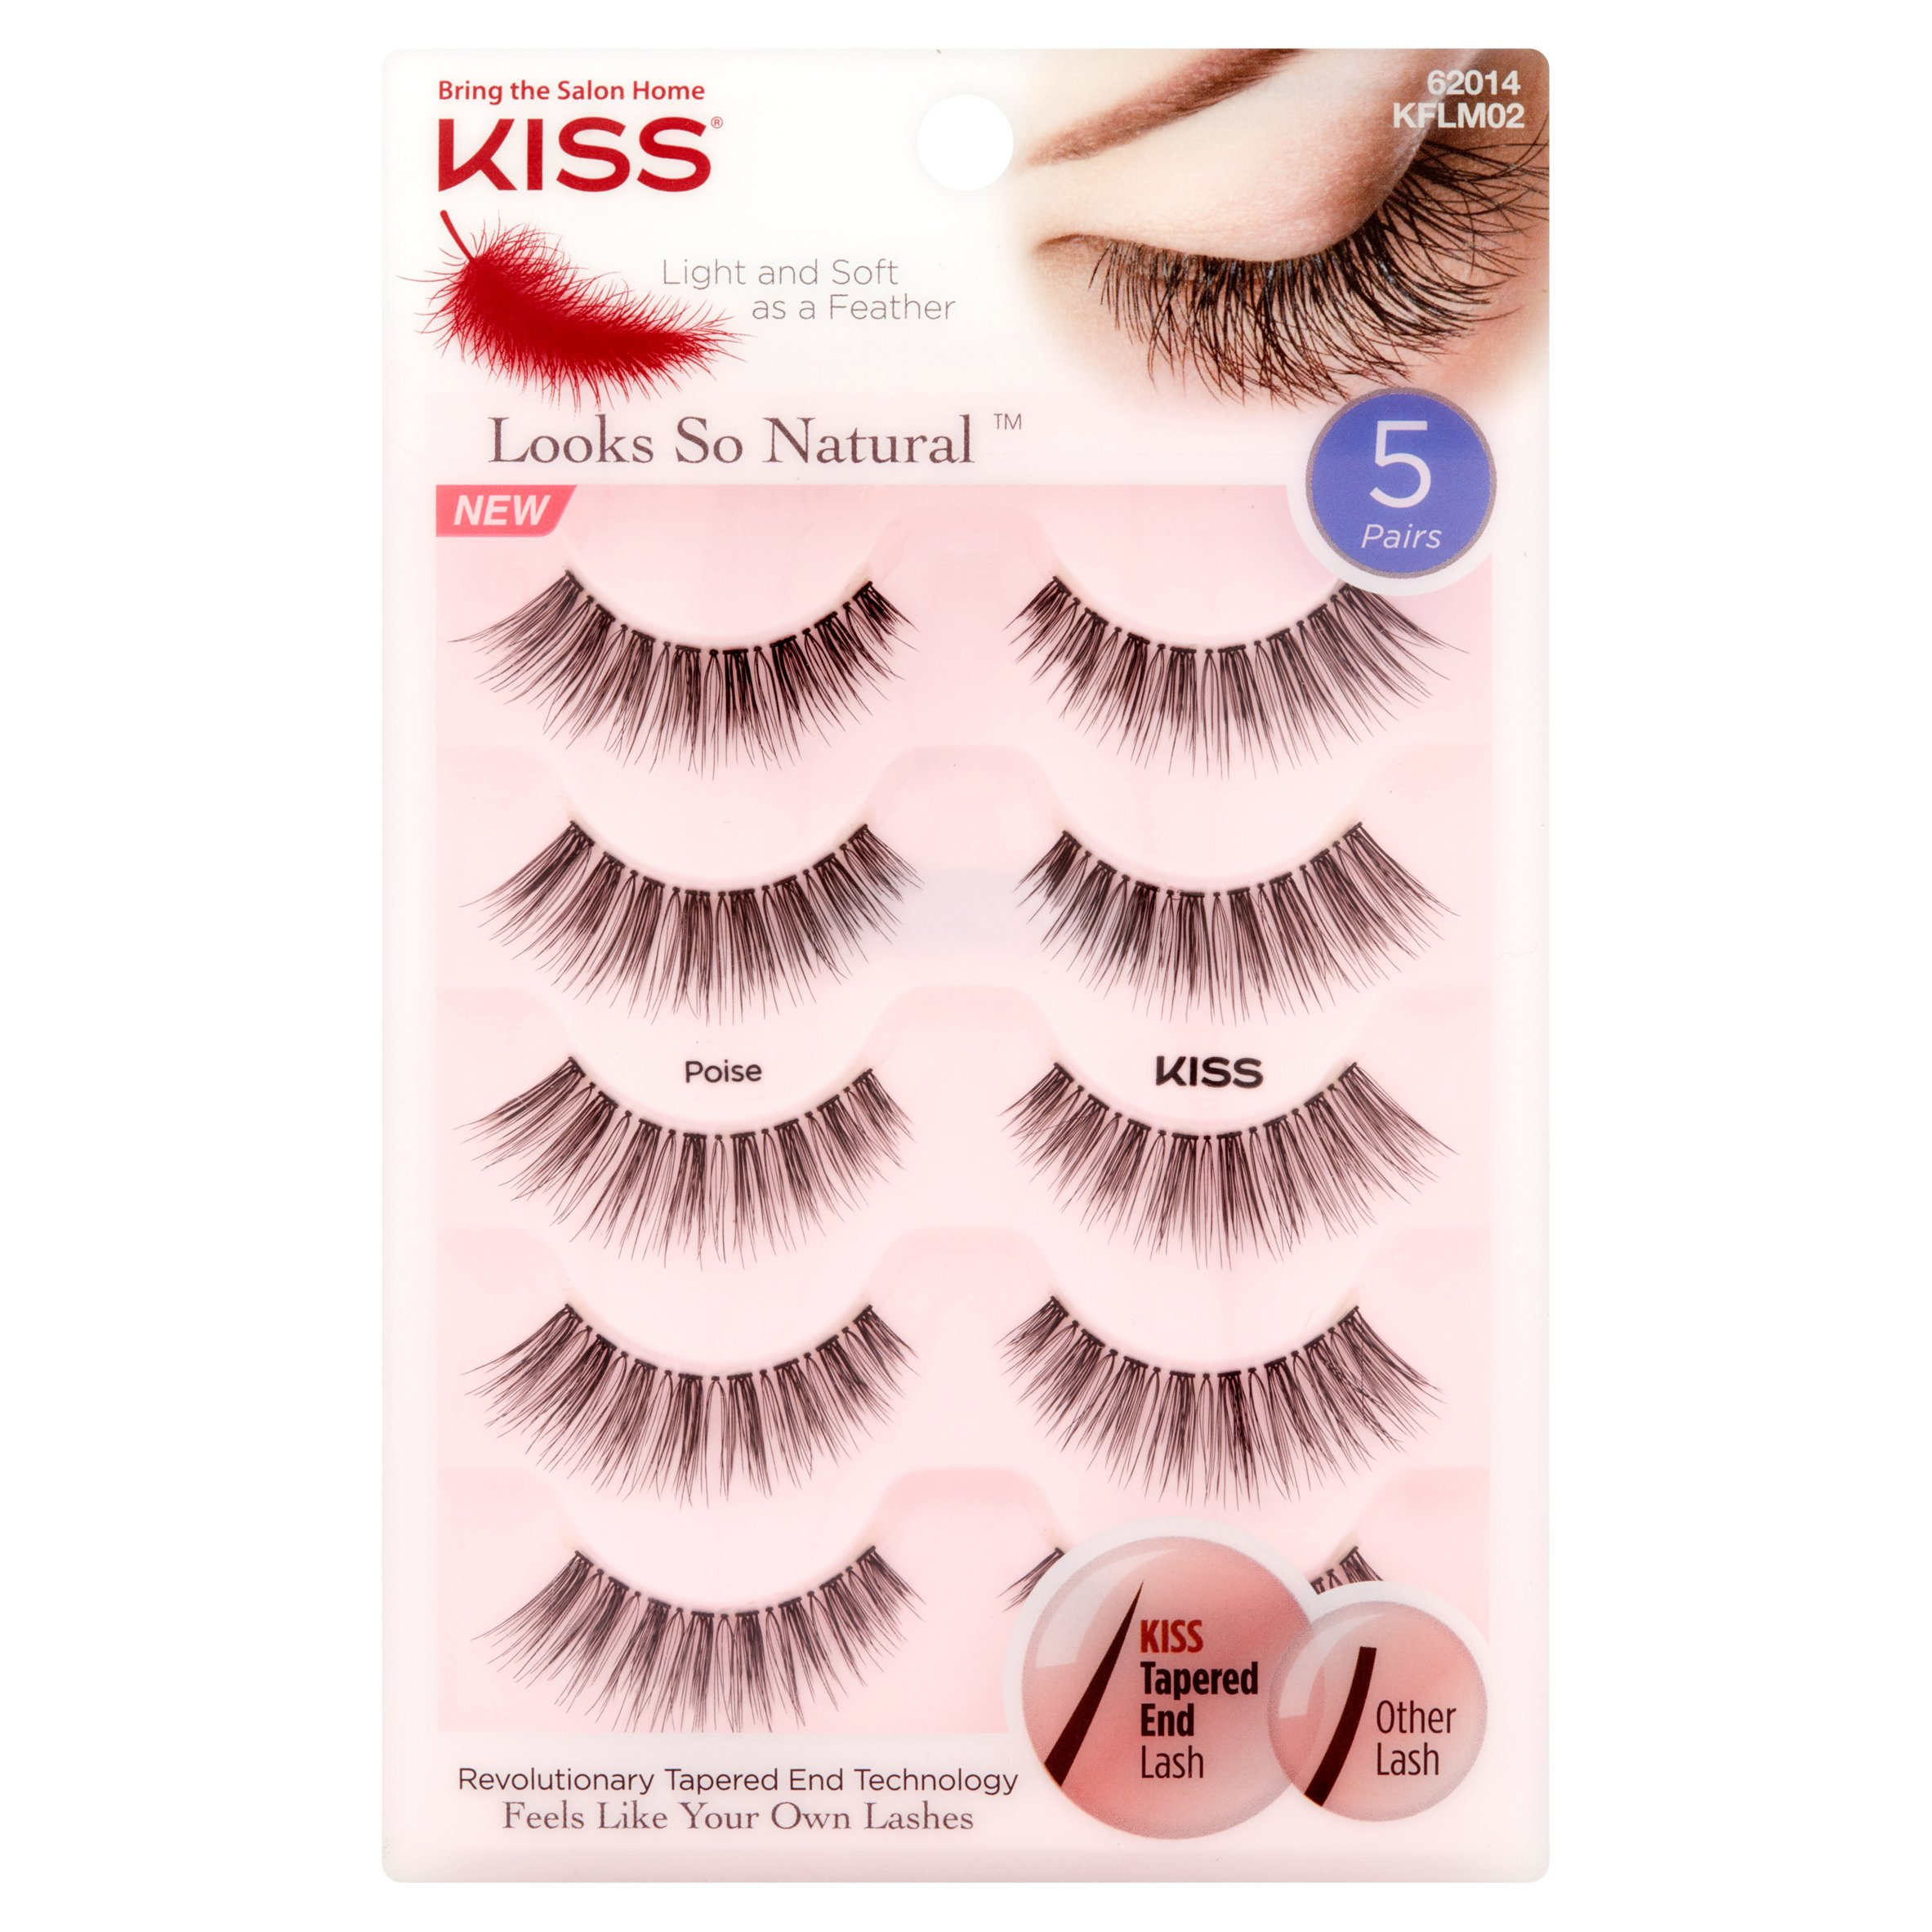 KISS Looks So Natural False Eyelashes, Poise, 5 pairs